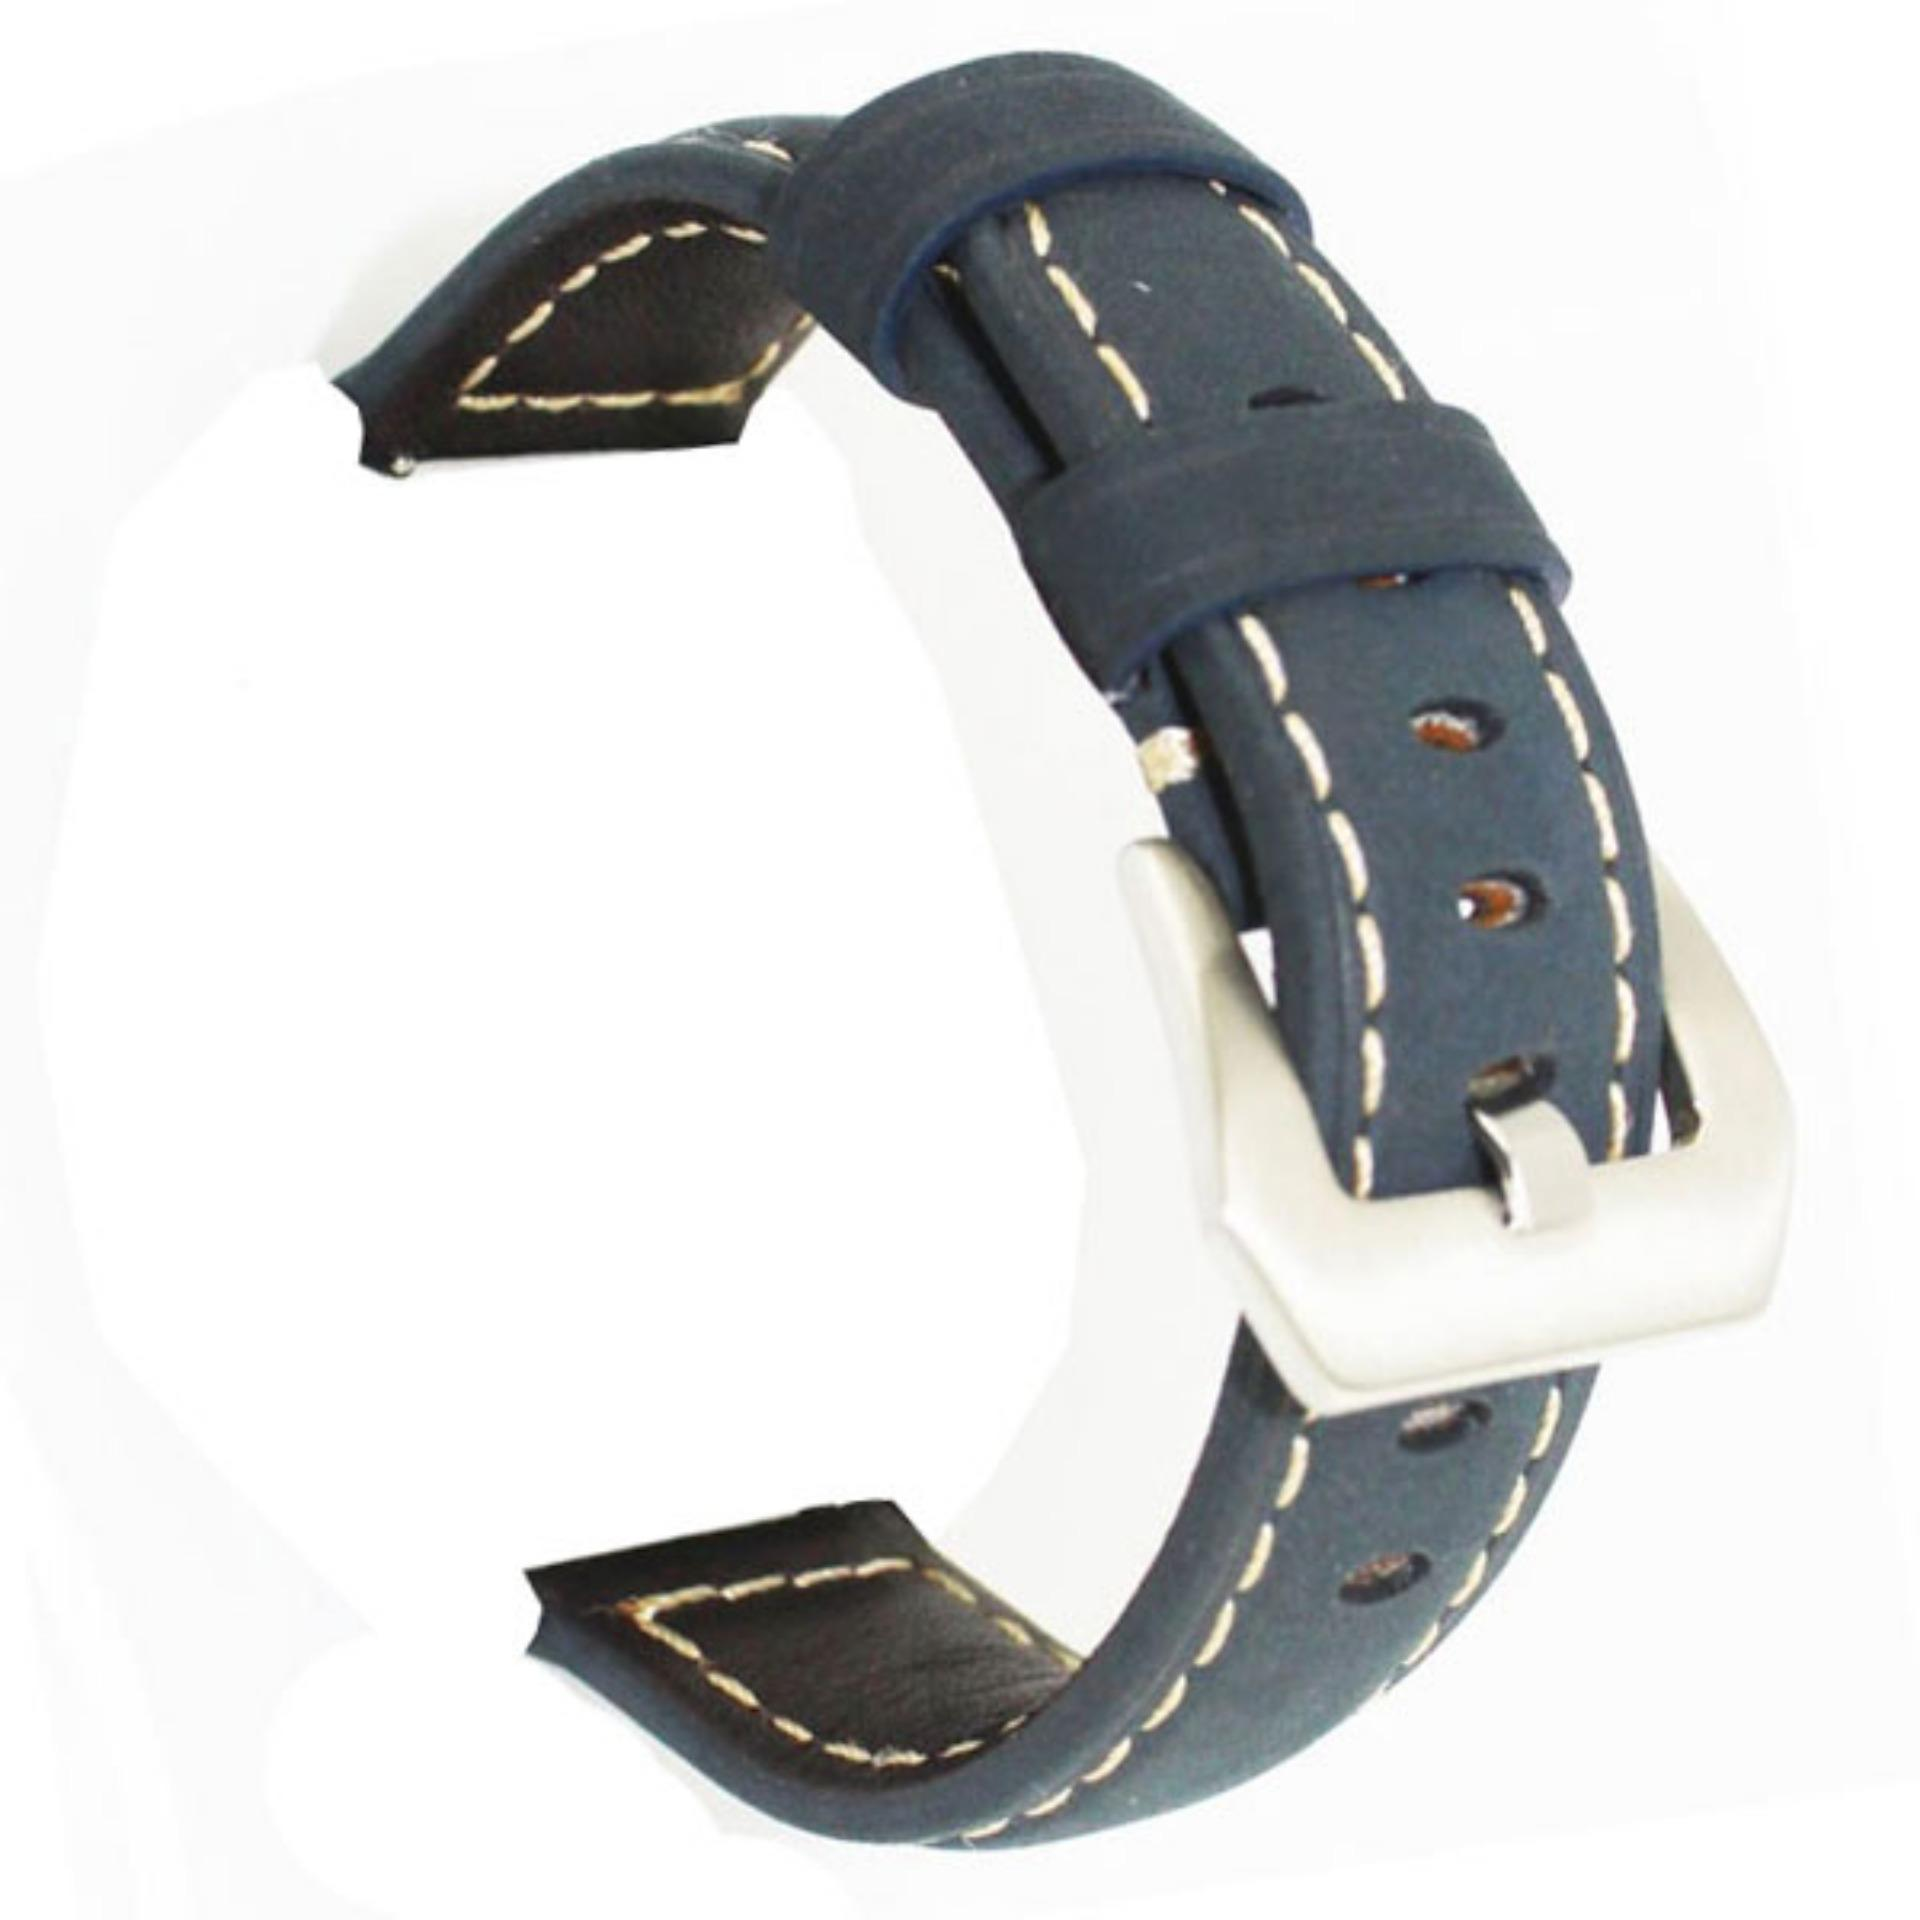 LOLLYPOP Vintage Leather Strap For Samsung Galaxy Gear S3 - Navy